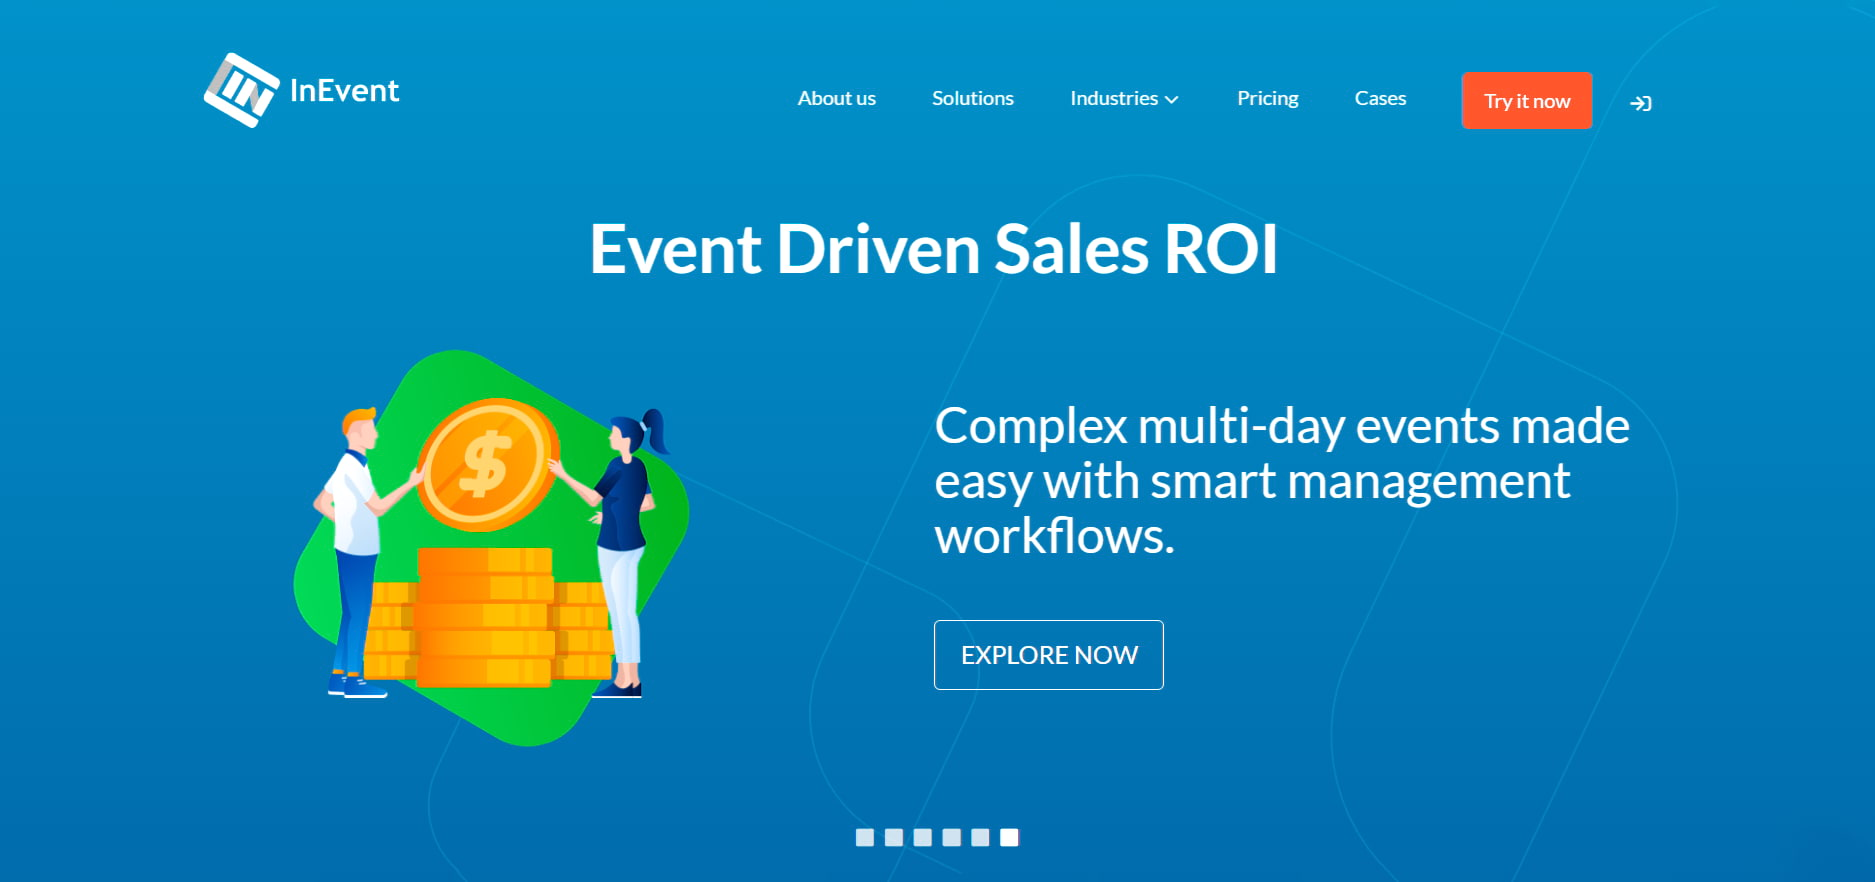 Inevent event management tool